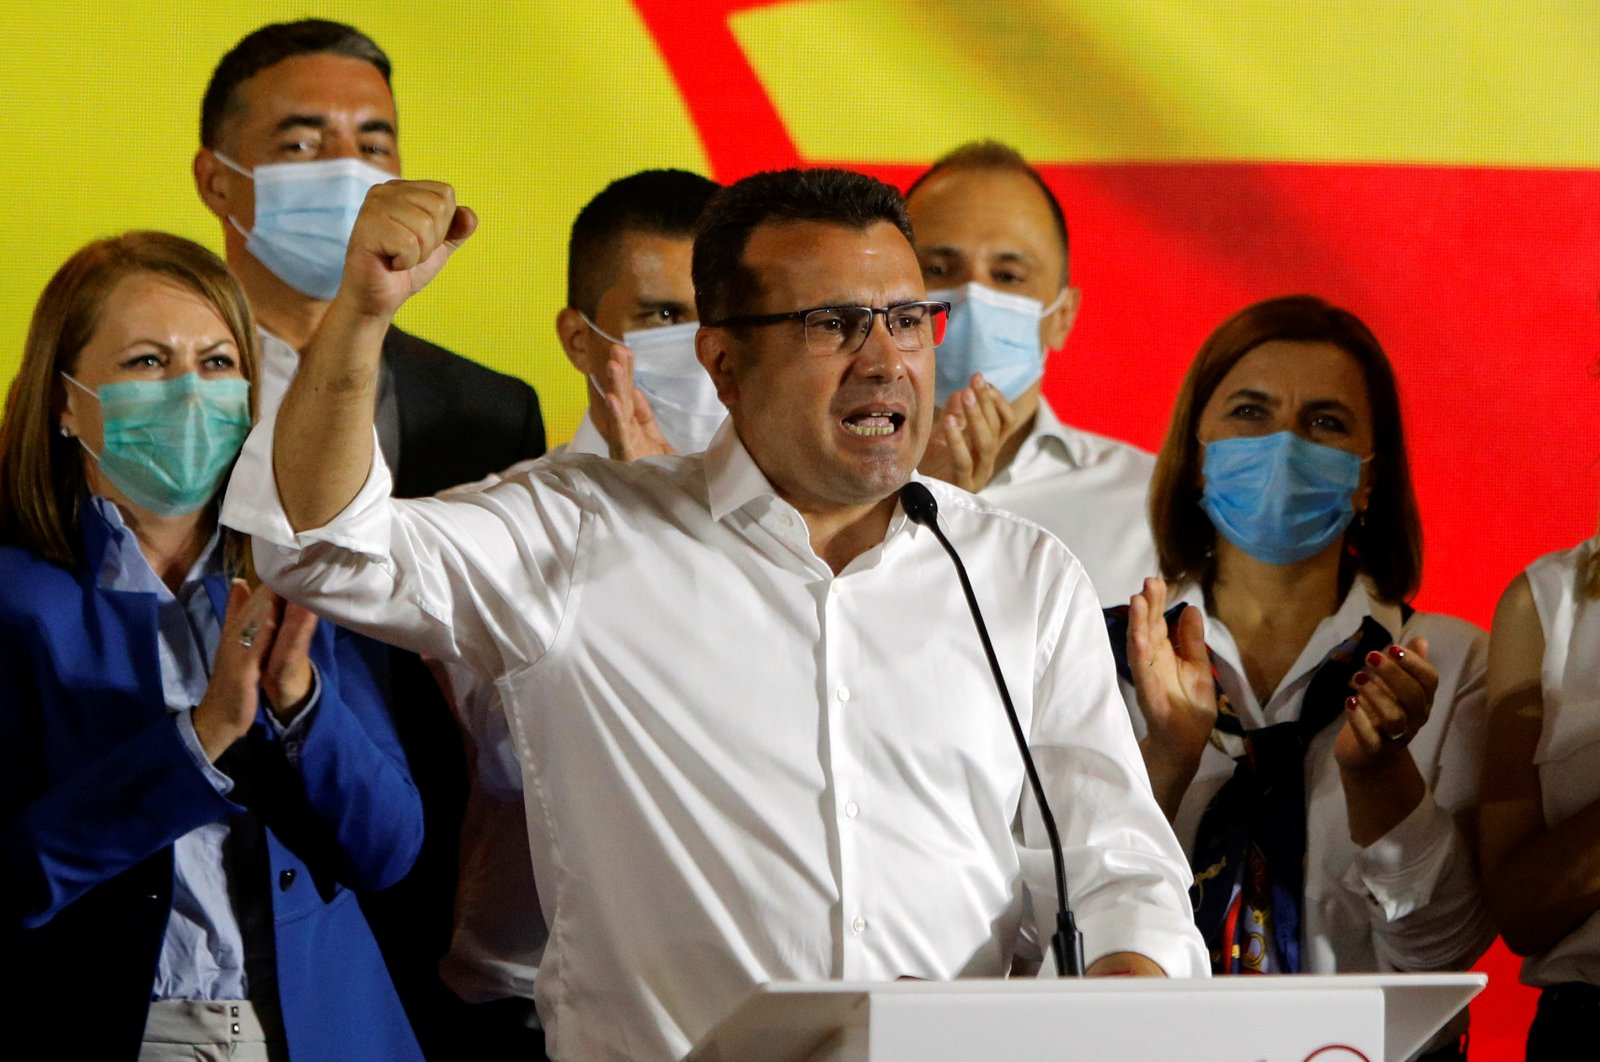 North Macedonia's former prime minister and leader of the ruling SDSM party Zoran Zaev celebrates his victory in a parliamentary election, Skopje, July 16, 2020. (REUTERS Photo)